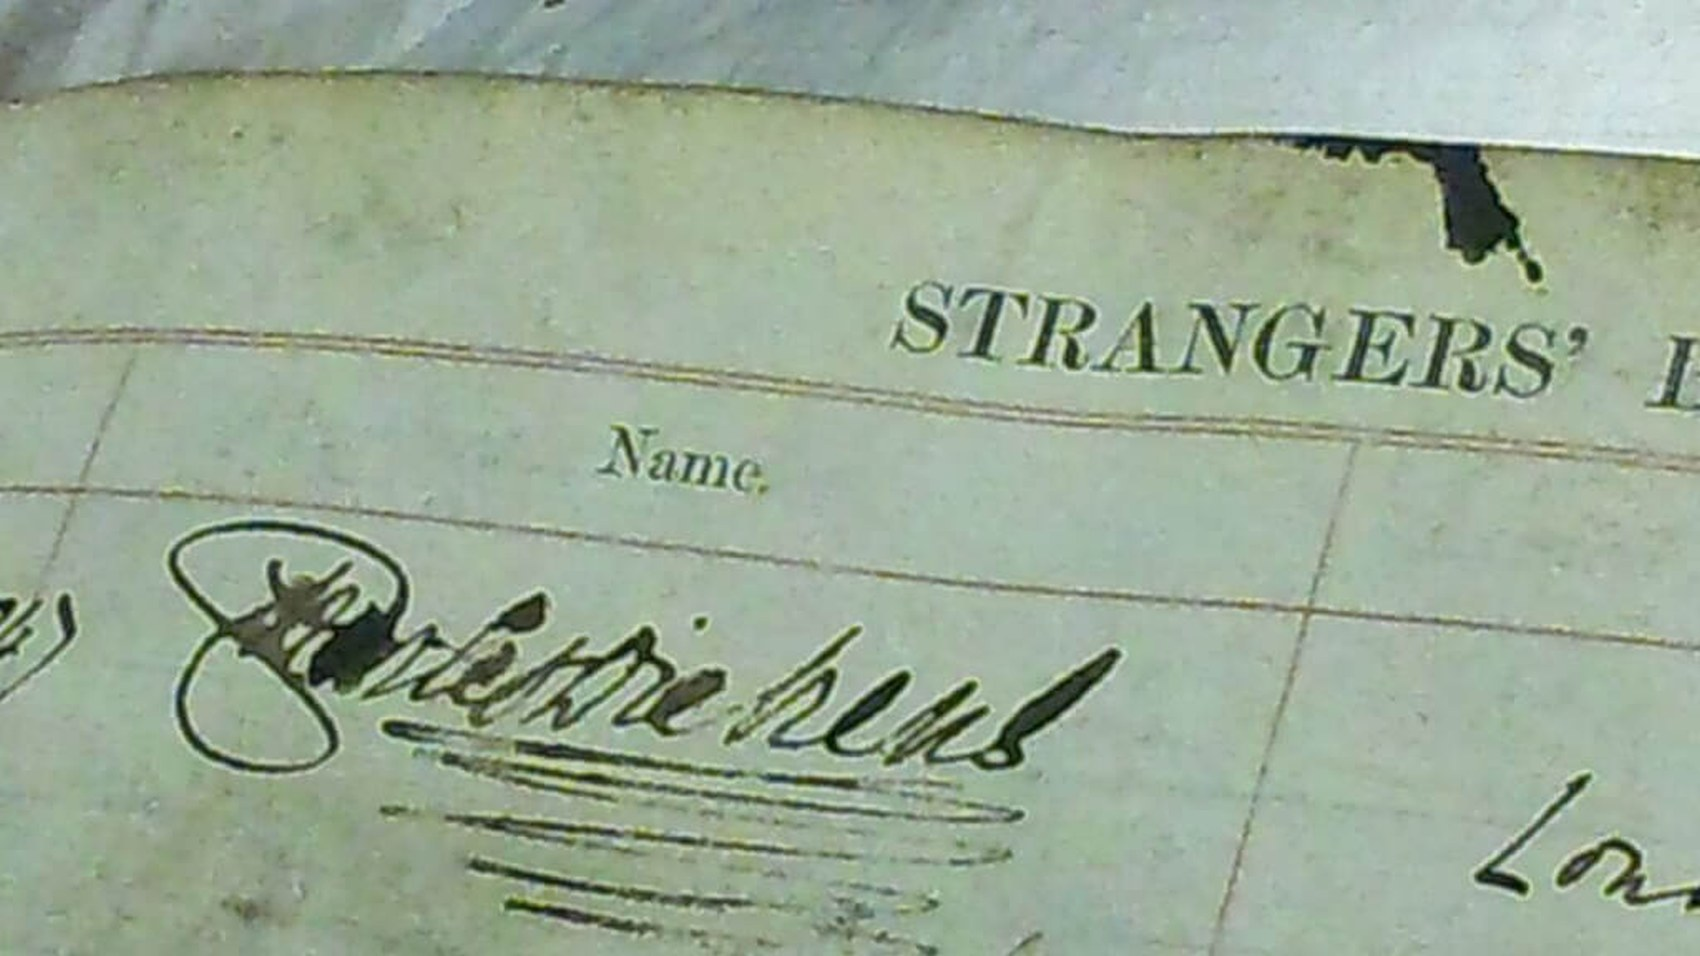 Charles Dickens' signature in the book of strangers in the RCS archive - known today as a visitors' book